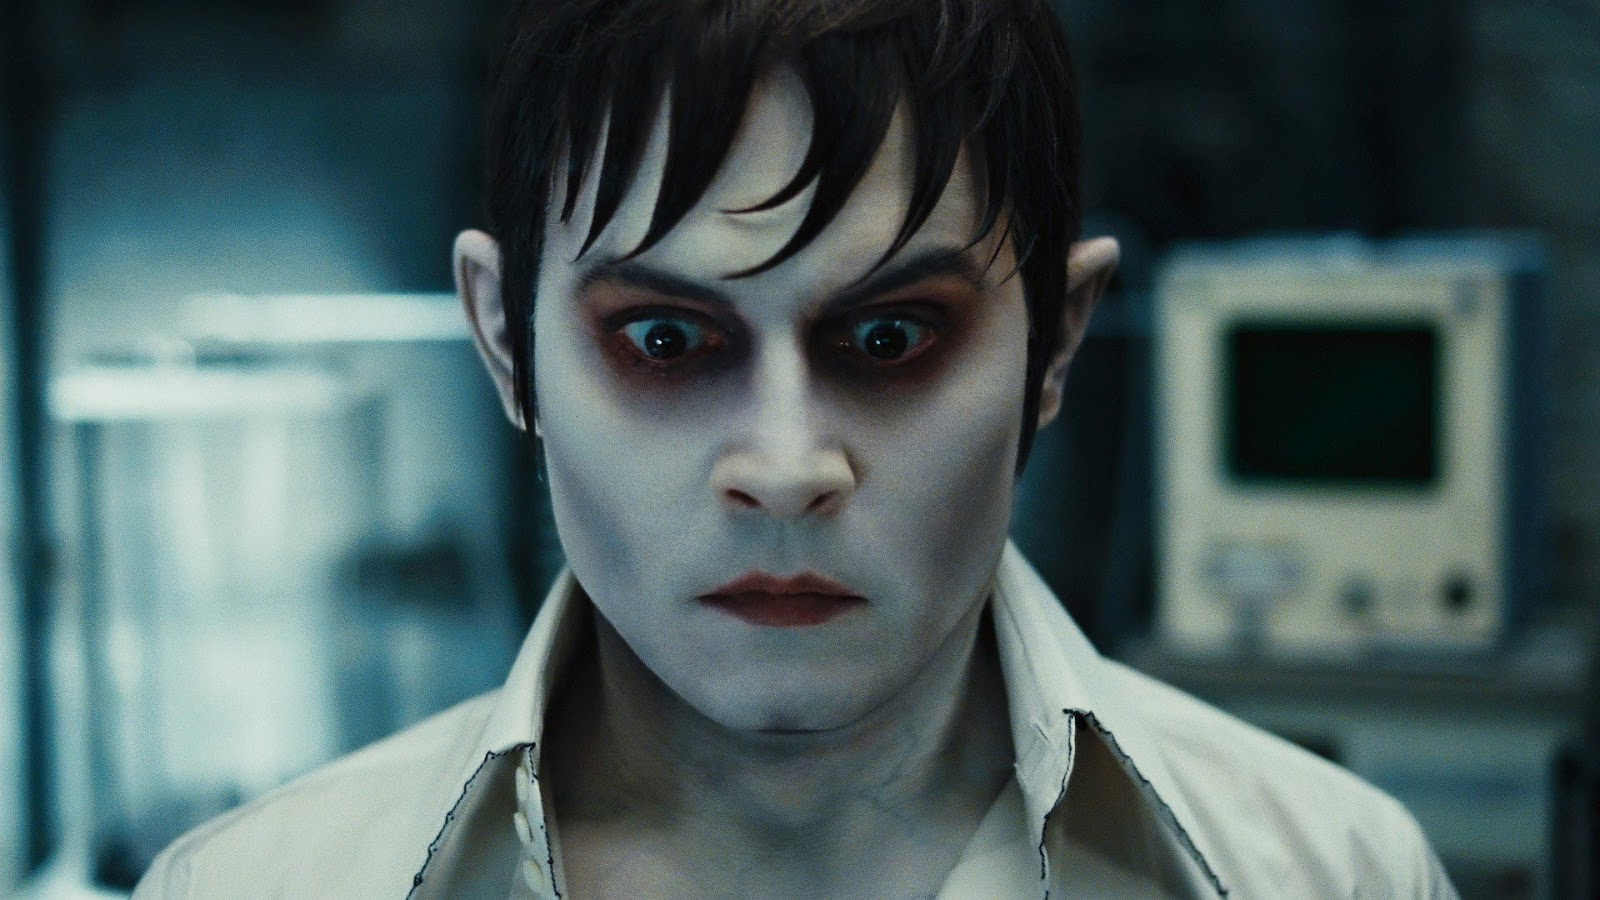 http://1.bp.blogspot.com/-WvKri-Nlw8c/T58SiOCOnhI/AAAAAAAABew/31RQgECSuLQ/s1600/Dark_Shadows_Johnny_Depp_Vampire_Make_Up_HD_Wallpaper.jpg